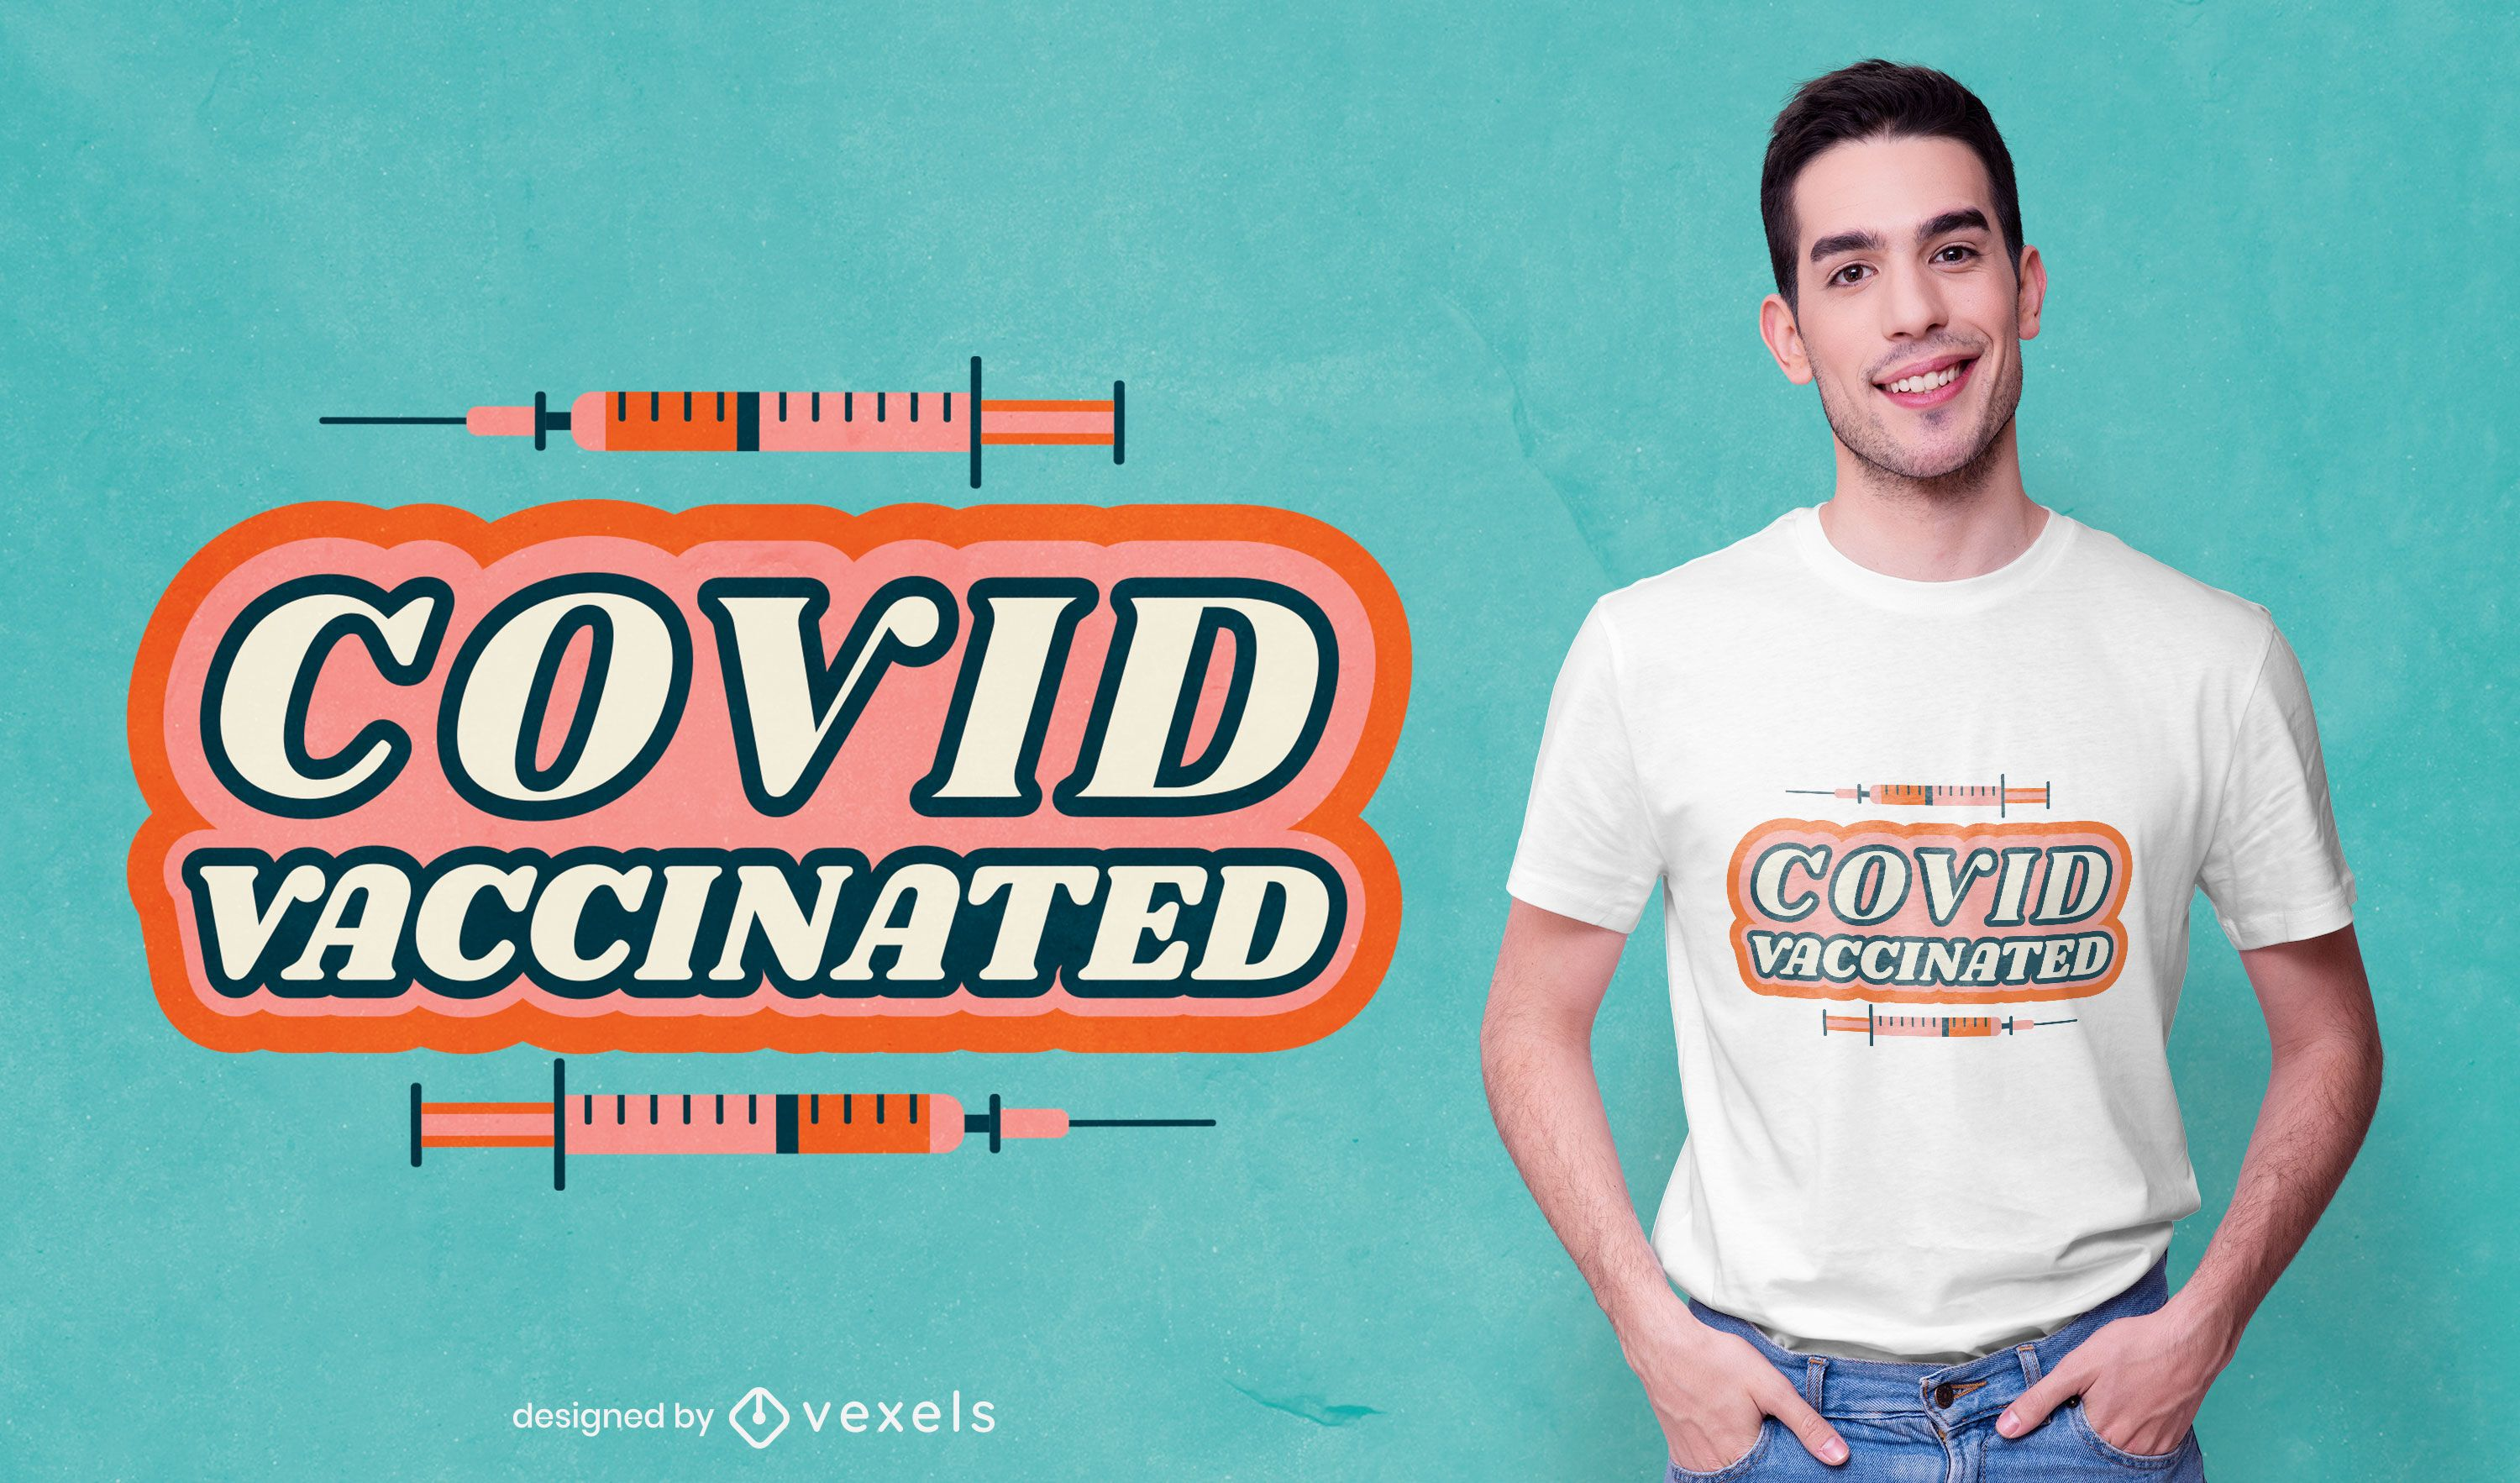 Covid vaccinated t-shirt design